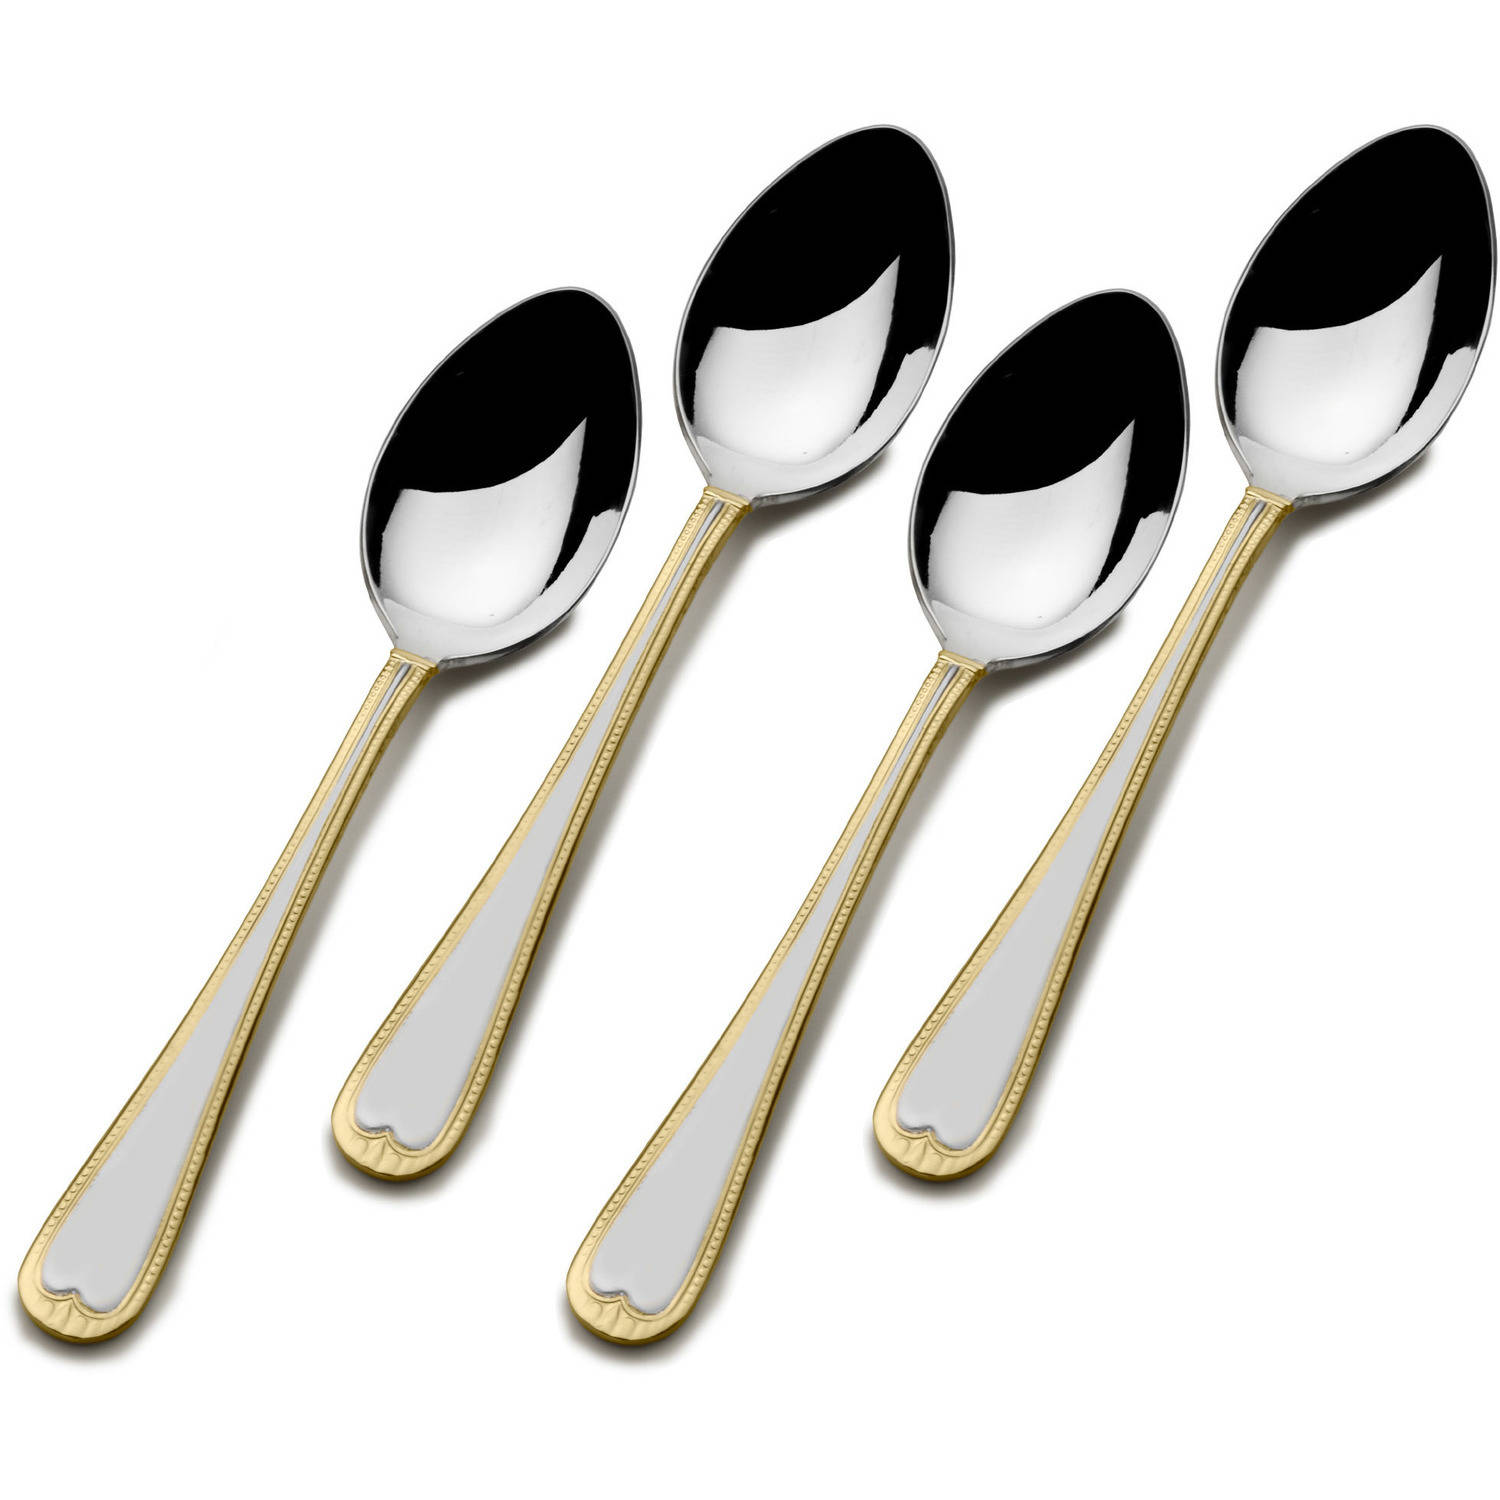 International Silver Gold Accent New Castle Demi Spoons, Set of 4